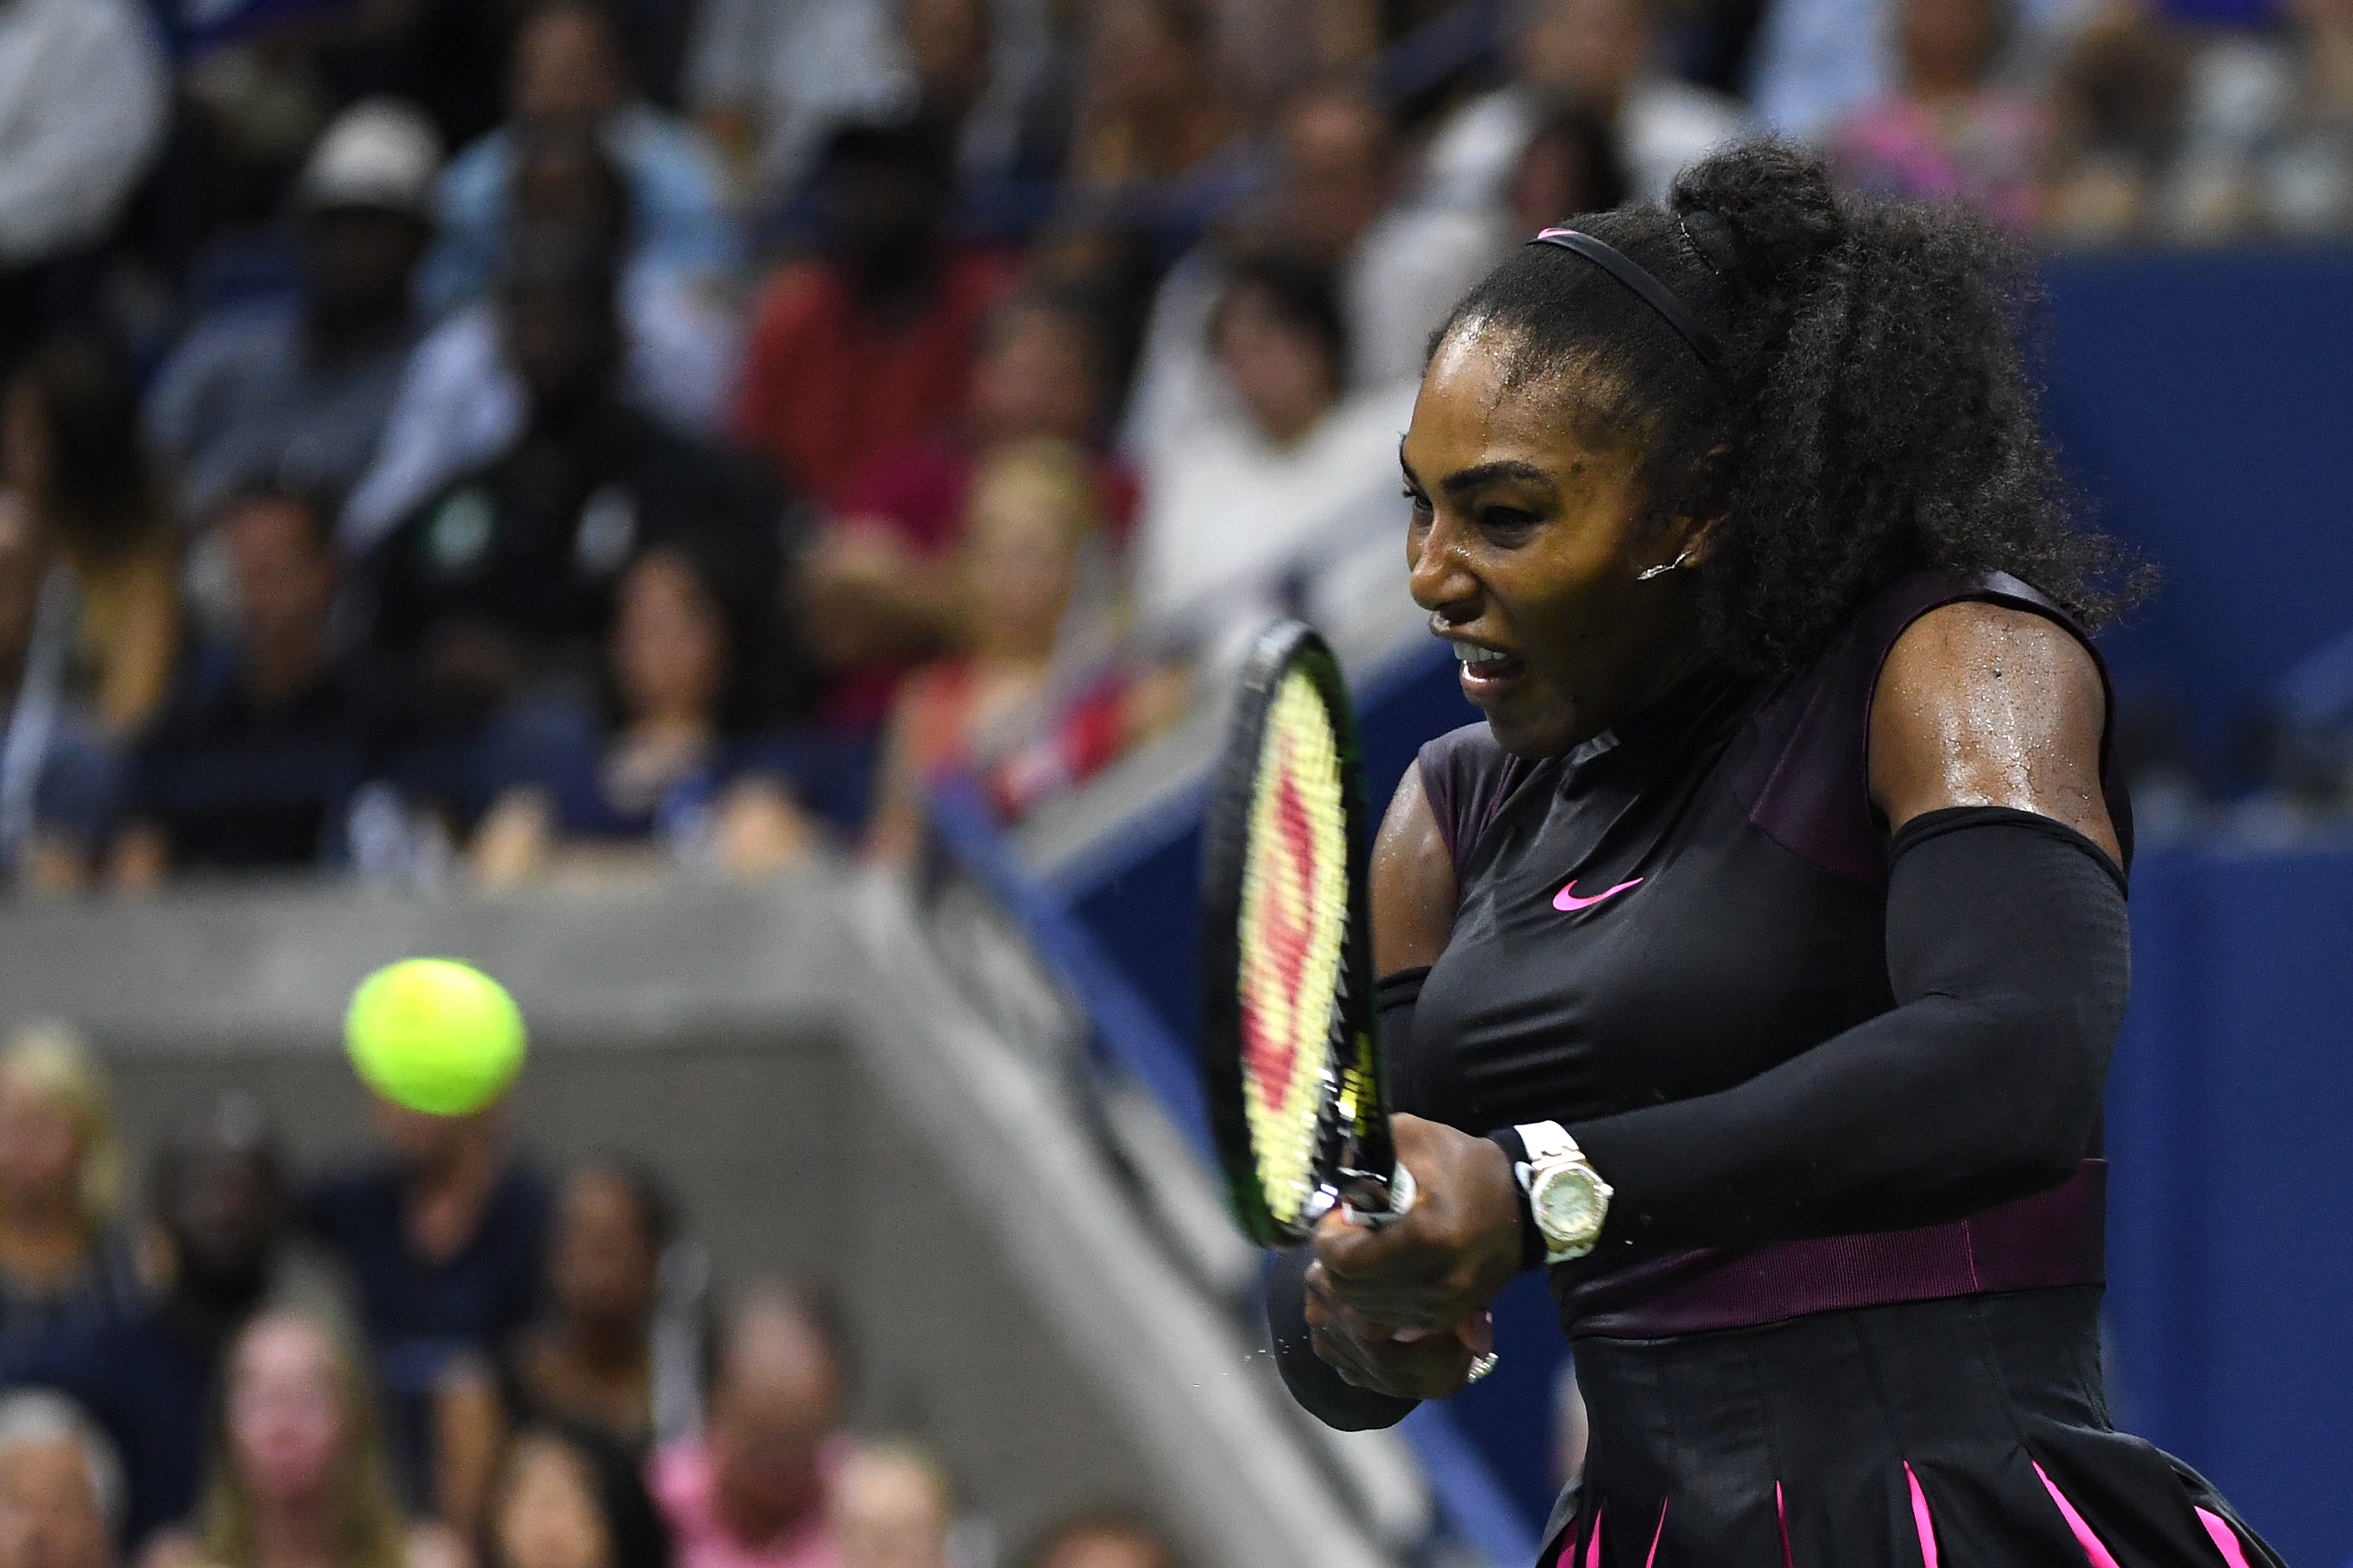 A returning Serena Williams looks to leave her mark on Flushing Meadows after on-court absence